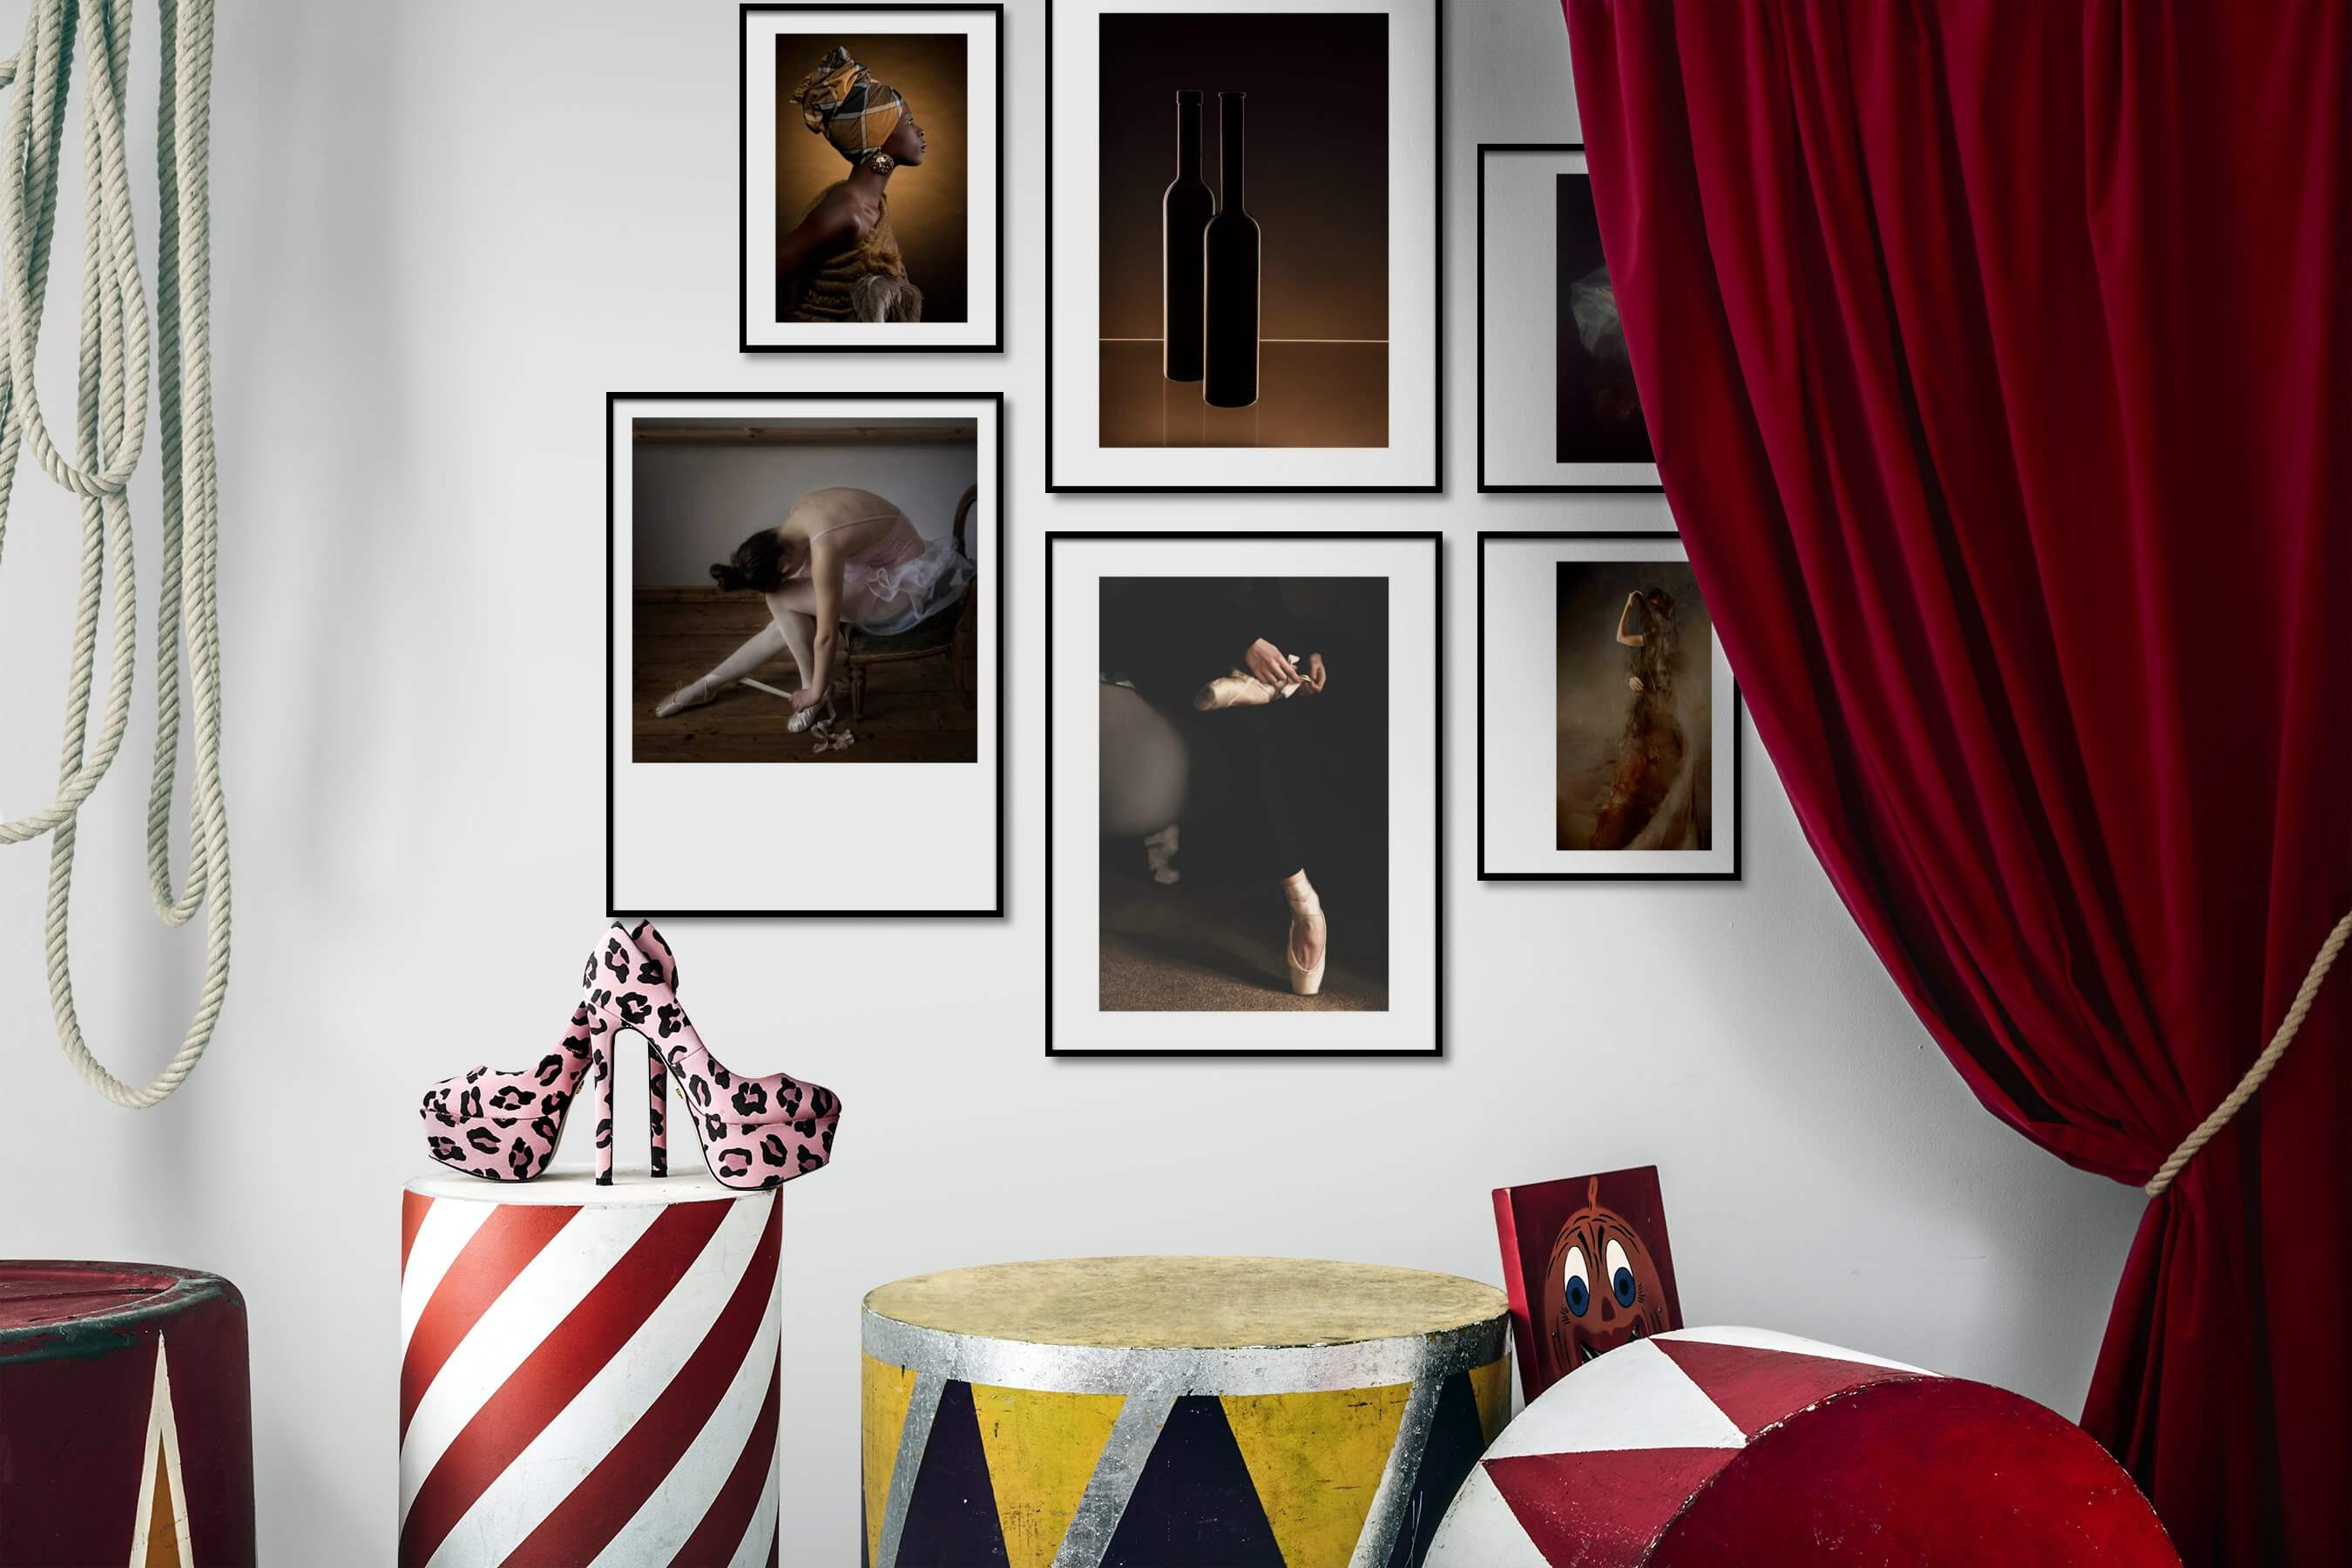 Gallery wall idea with six framed pictures arranged on a wall depicting Fashion & Beauty, For the Minimalist, For the Moderate, and Beach & Water